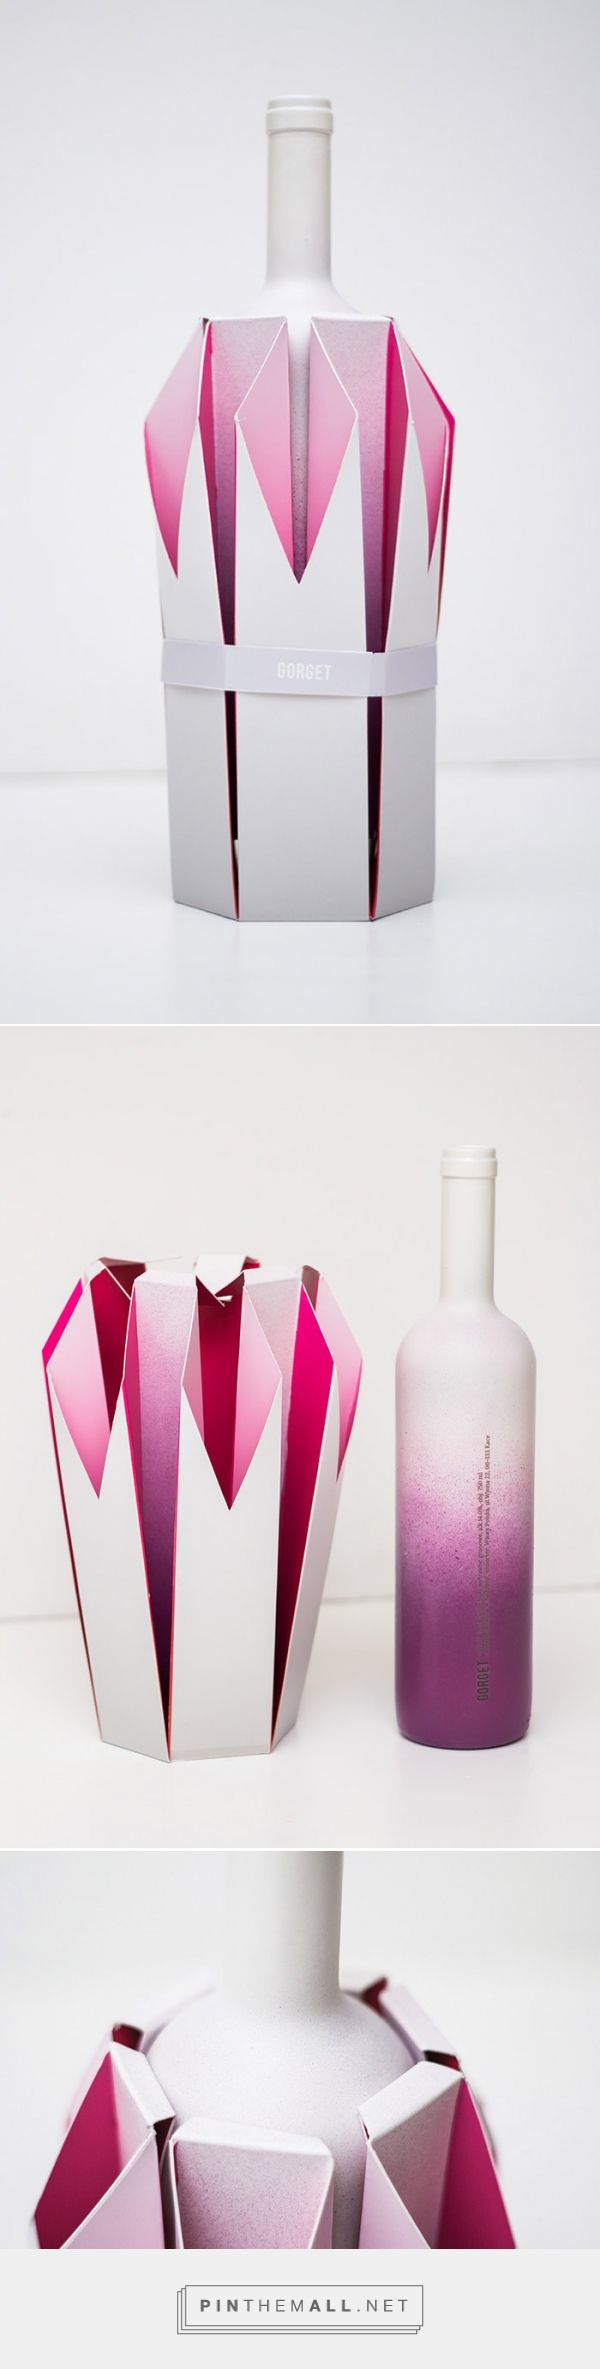 Gorget wine designed by Natalia Wysocka. Pin curated by #SFields99 #packaging #design